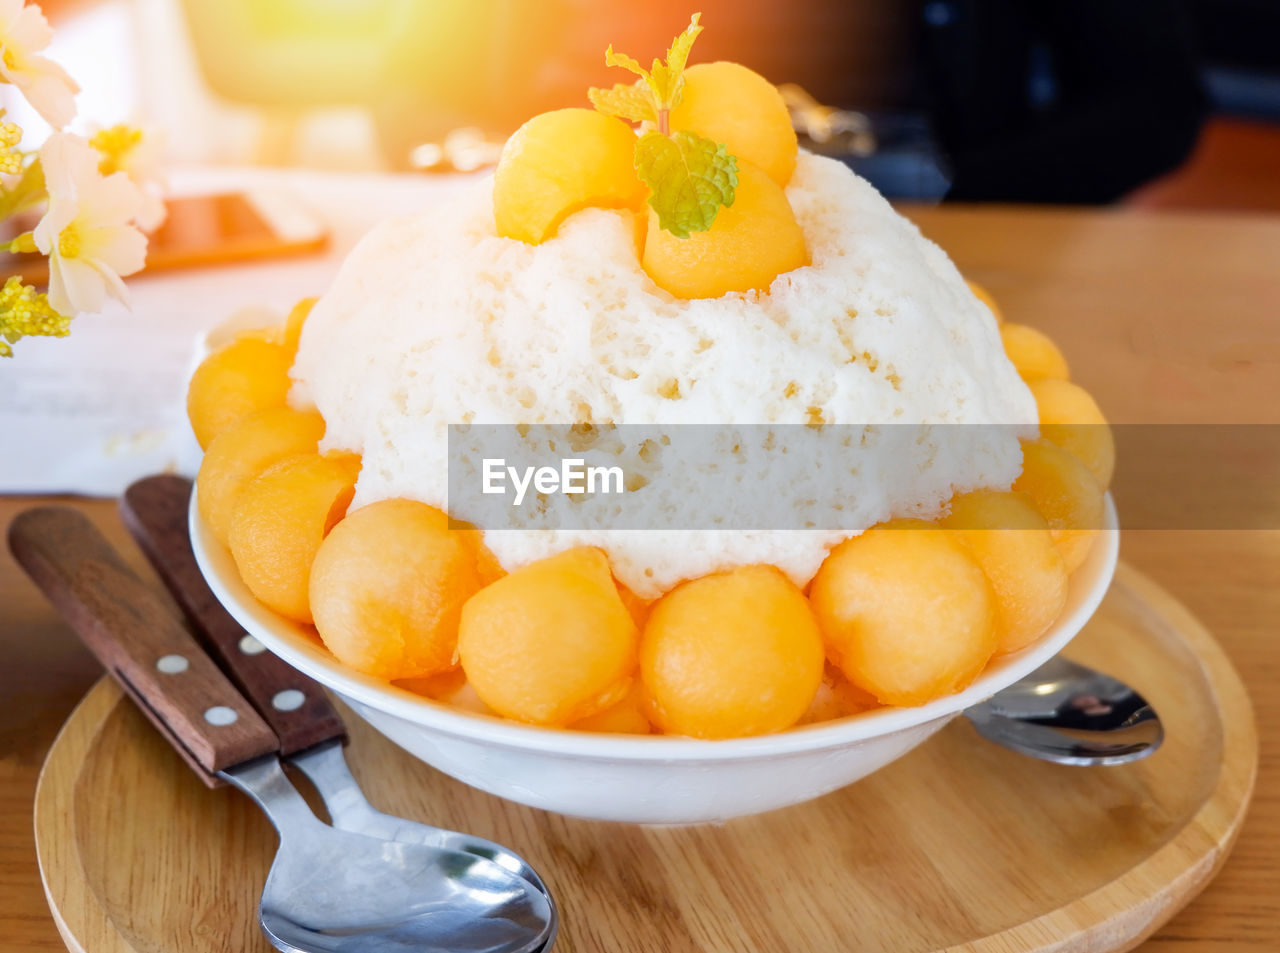 food and drink, food, freshness, sweet food, ready-to-eat, sweet, dessert, spoon, eating utensil, indulgence, kitchen utensil, close-up, table, indoors, temptation, unhealthy eating, plate, still life, dairy product, focus on foreground, no people, garnish